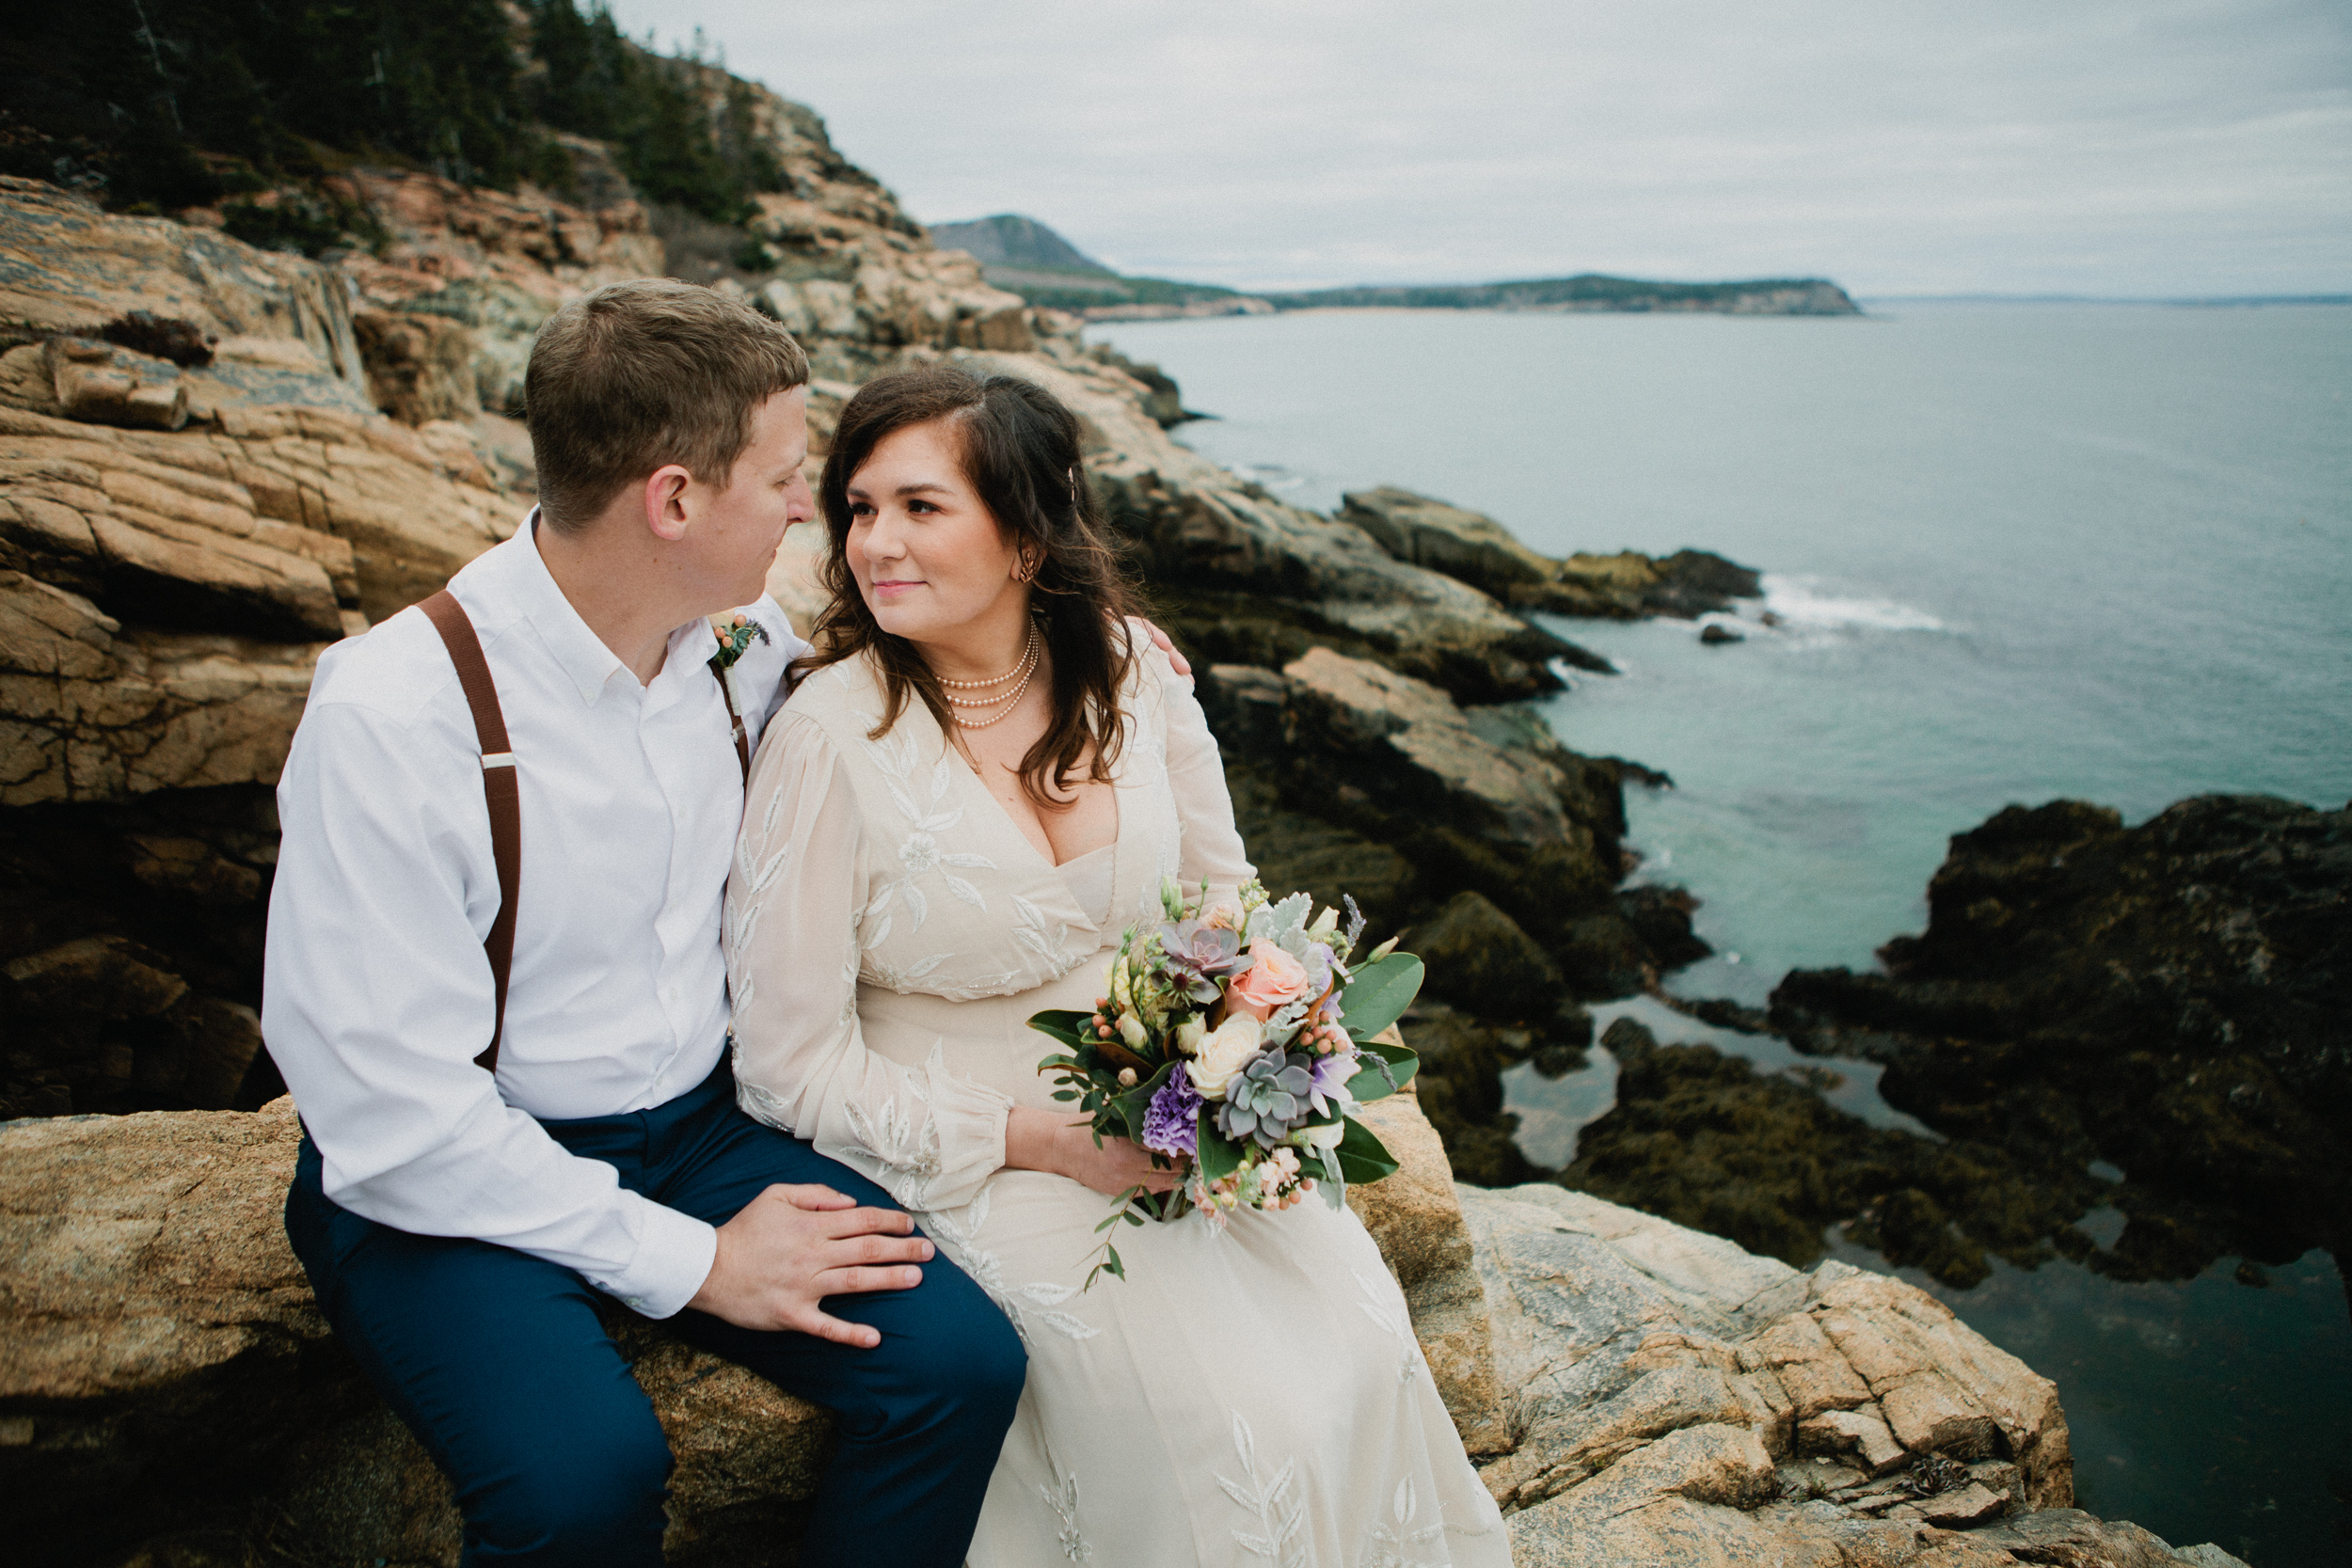 Acadia-Elopement-Photos-384.jpg